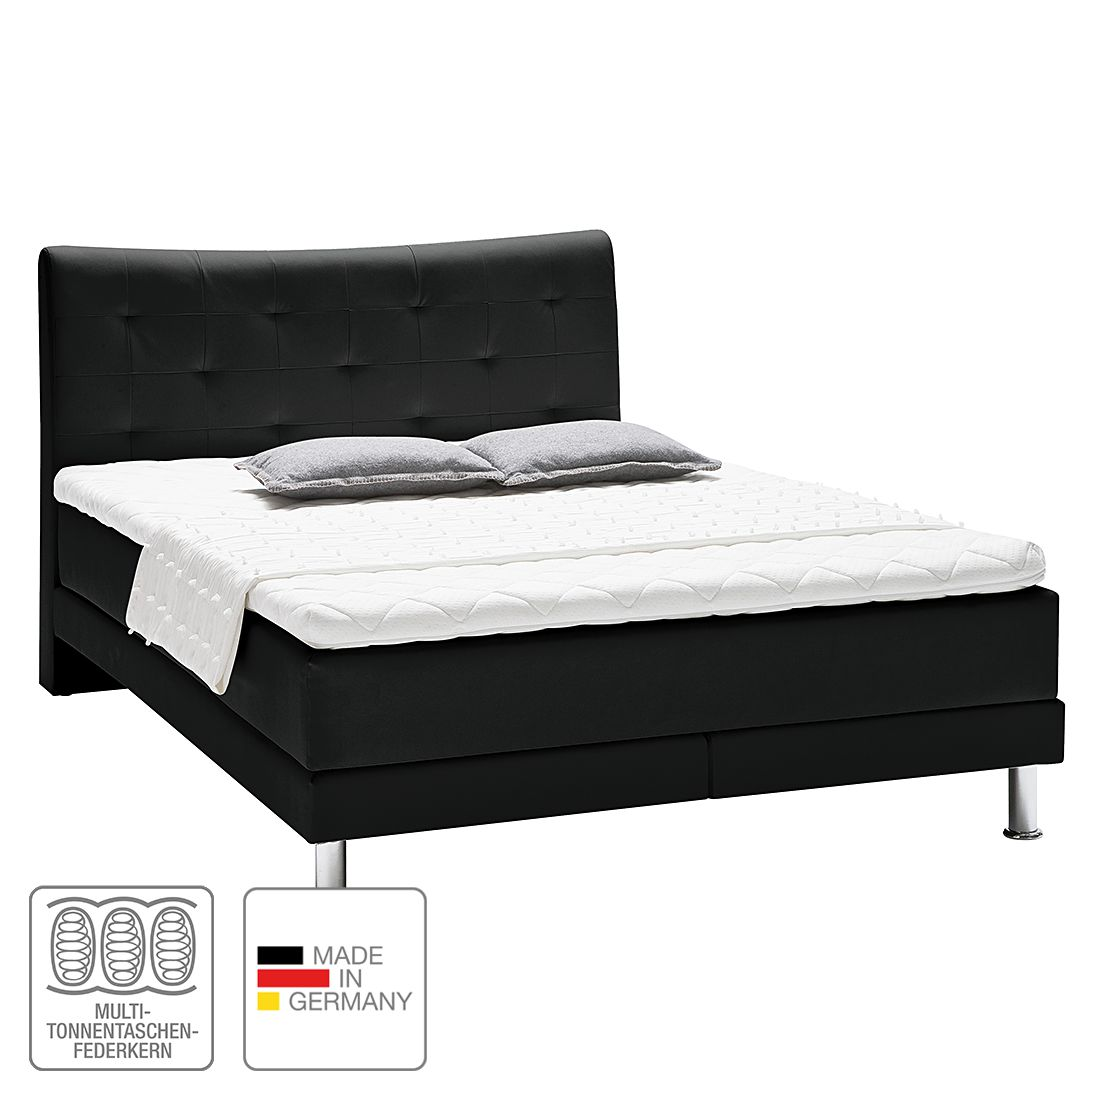 boxspringbett vega kunstleder 140 x 200cm h2 bis 80. Black Bedroom Furniture Sets. Home Design Ideas